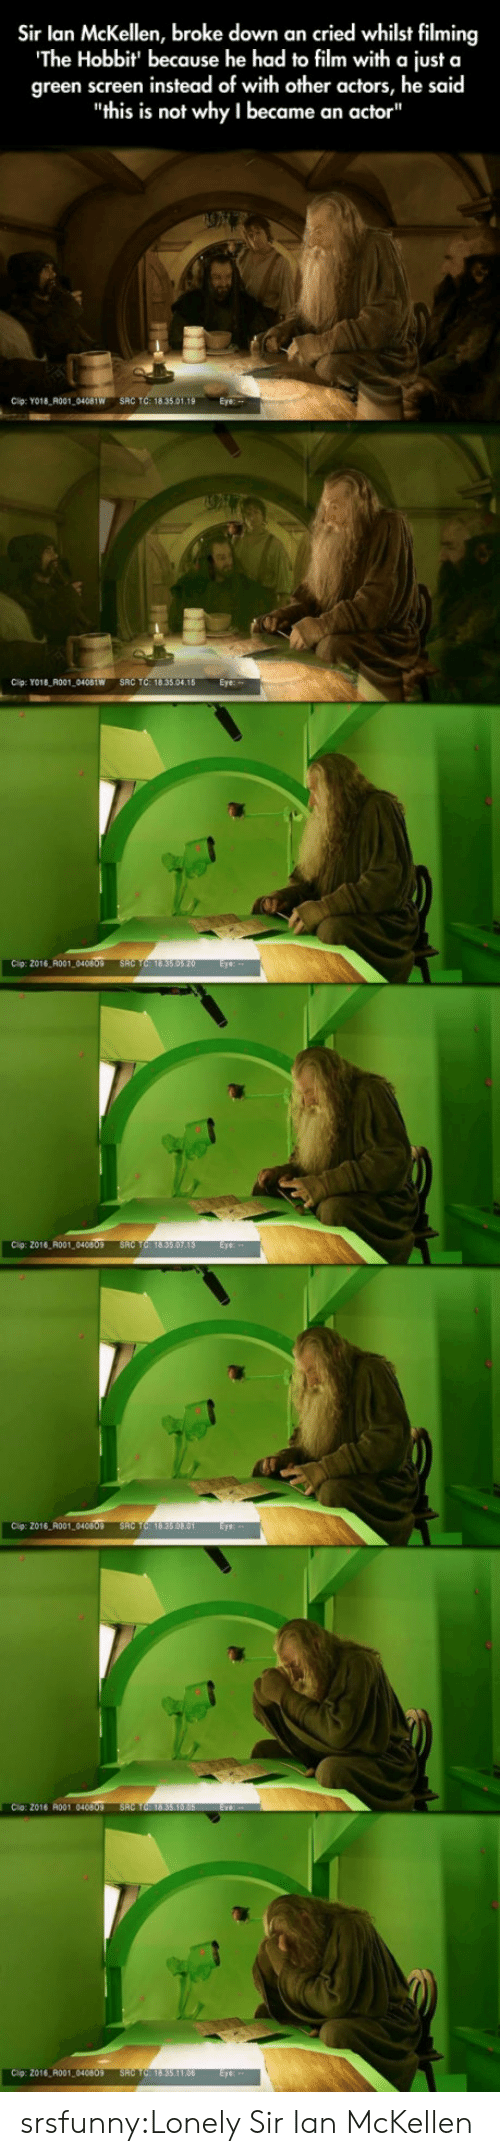 """Tumblr, Ian McKellen, and Blog: Sir lan McKellen, broke down an cried whilst filming  The Hobbit' because he had to film with a just a  green screen instead of with other actors, he said  """"this is not why I became an actor""""  Cip: YO18 R001 04081W SRC TC: 18.35.01  Cip: Yo18 R001 0401W SRC TC: 18.33.04.18 Eye  Cip: 2016 A001  2016 R001,040809  Clip: 2016 R001  Cio Z016 ol 040  016 R001 04080 srsfunny:Lonely Sir Ian McKellen"""